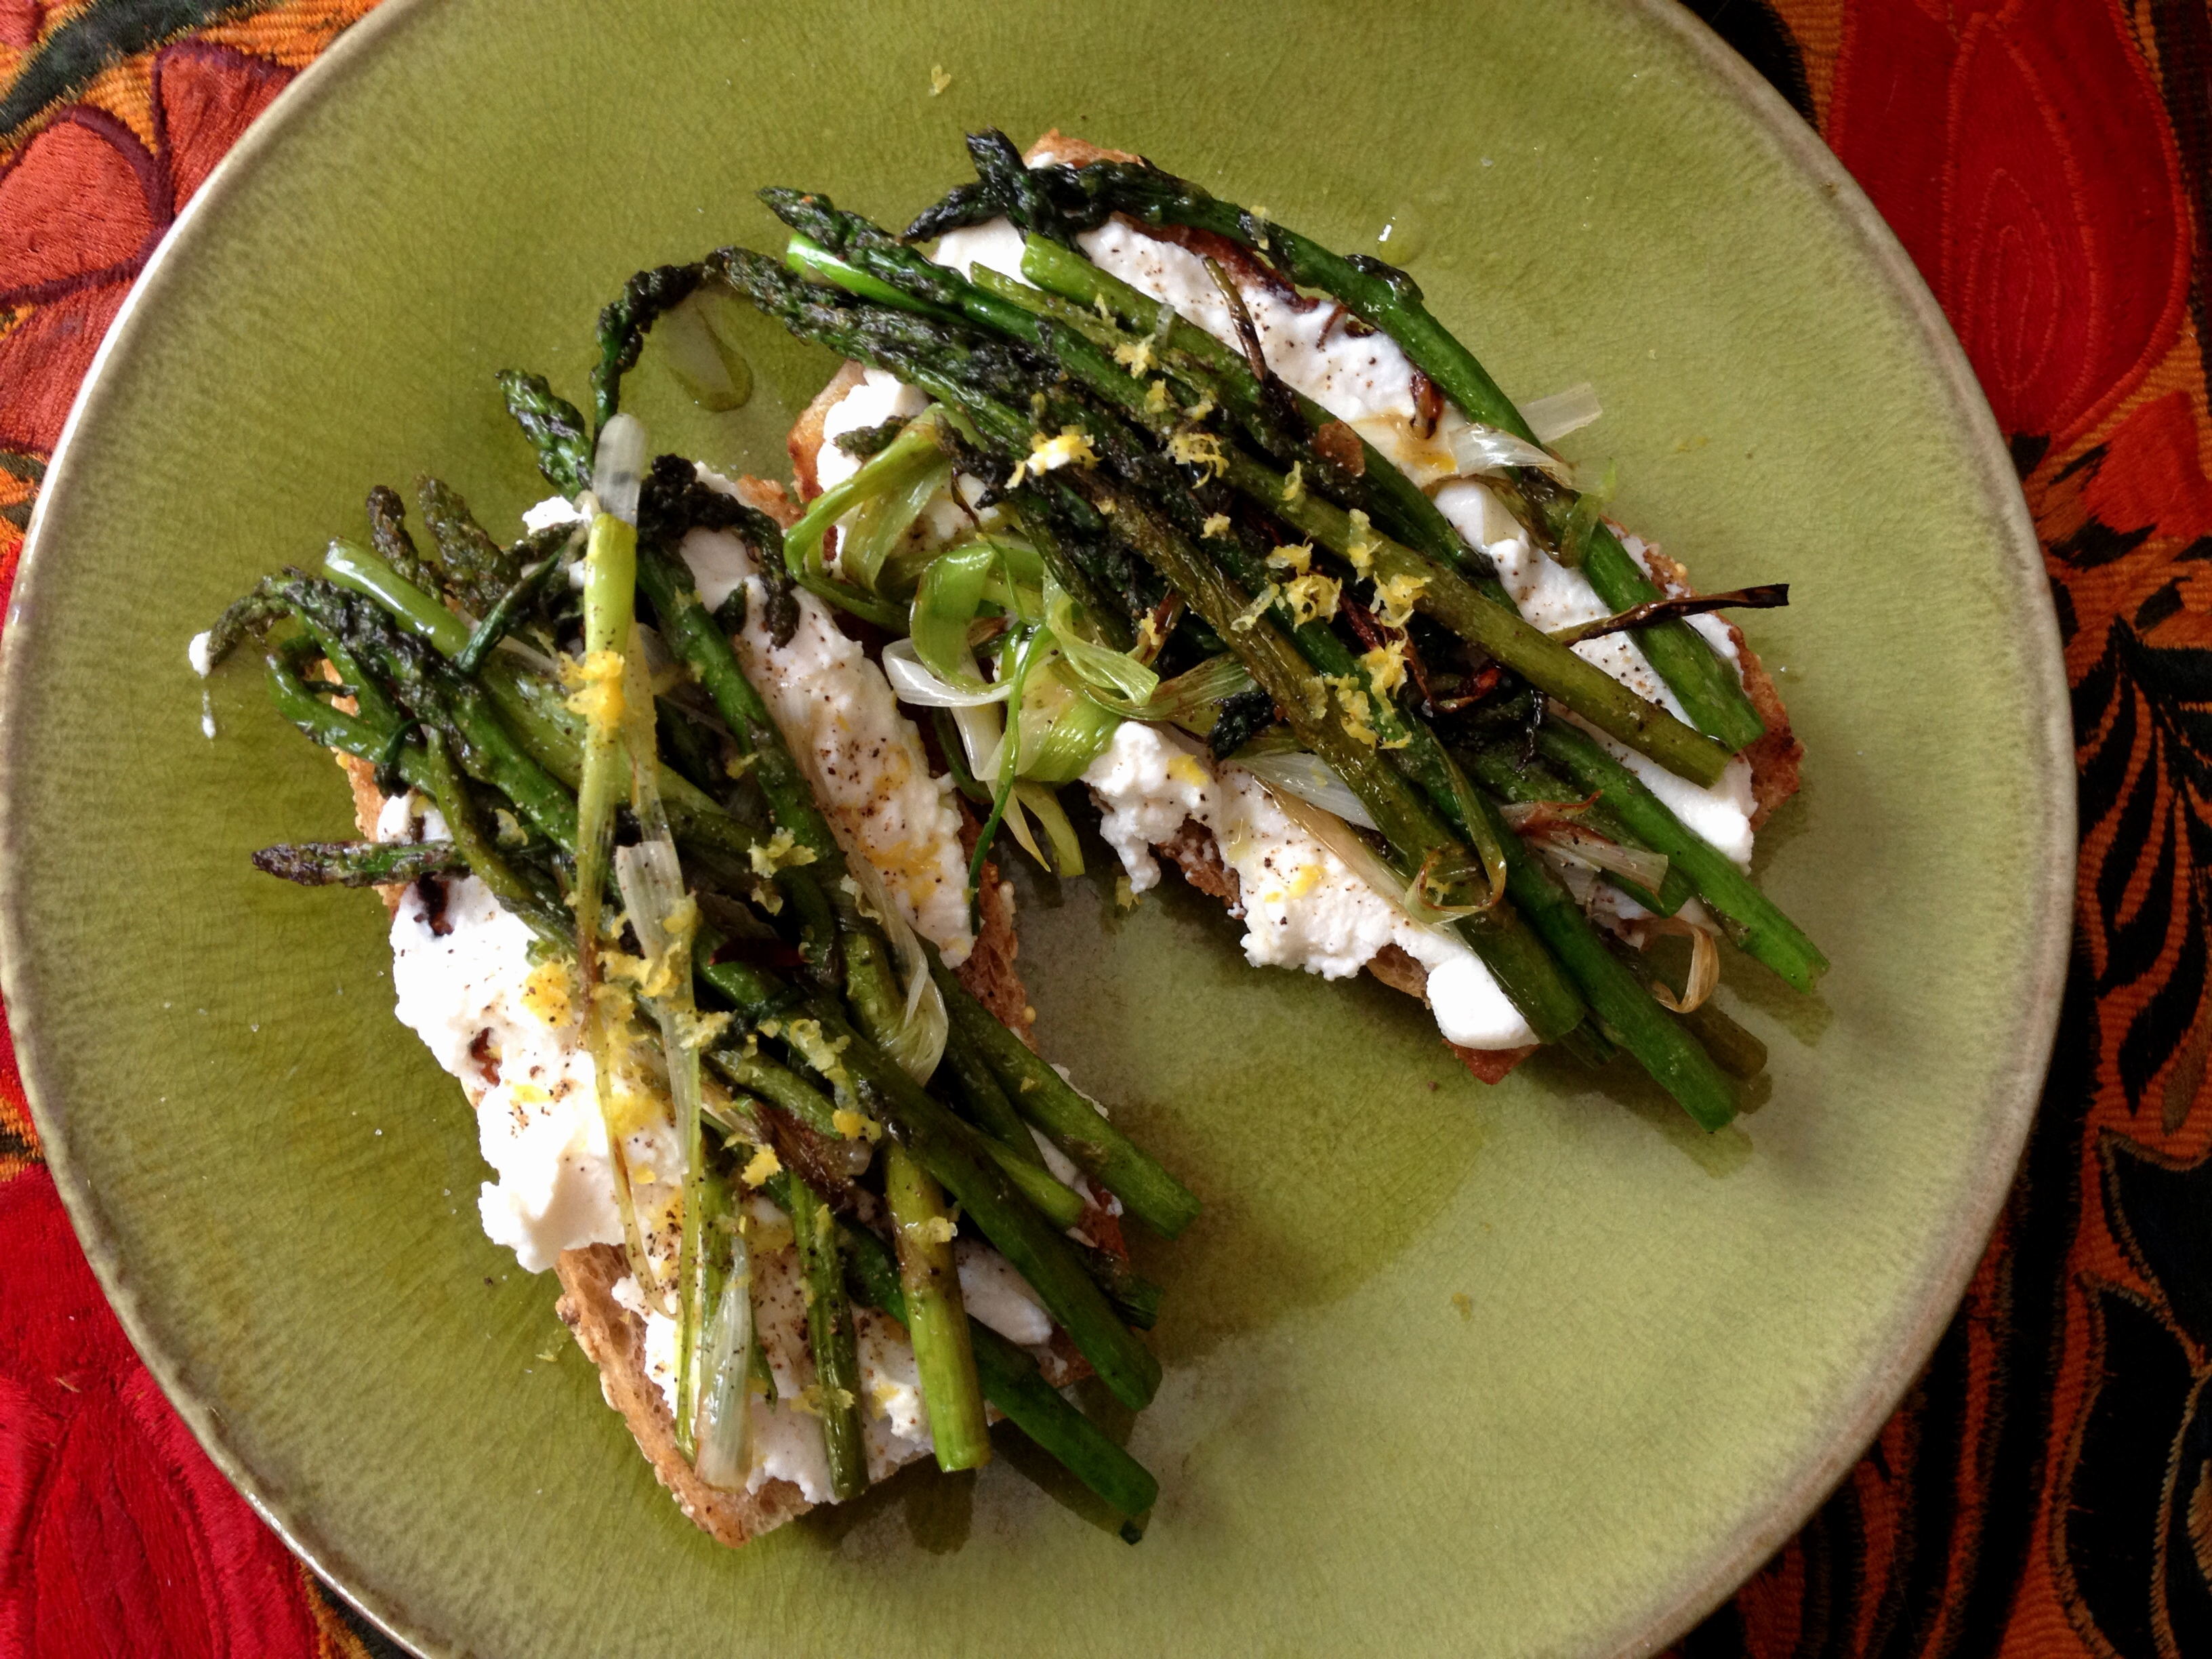 ... grilled asparagus with this was special for monica grilled asparagus